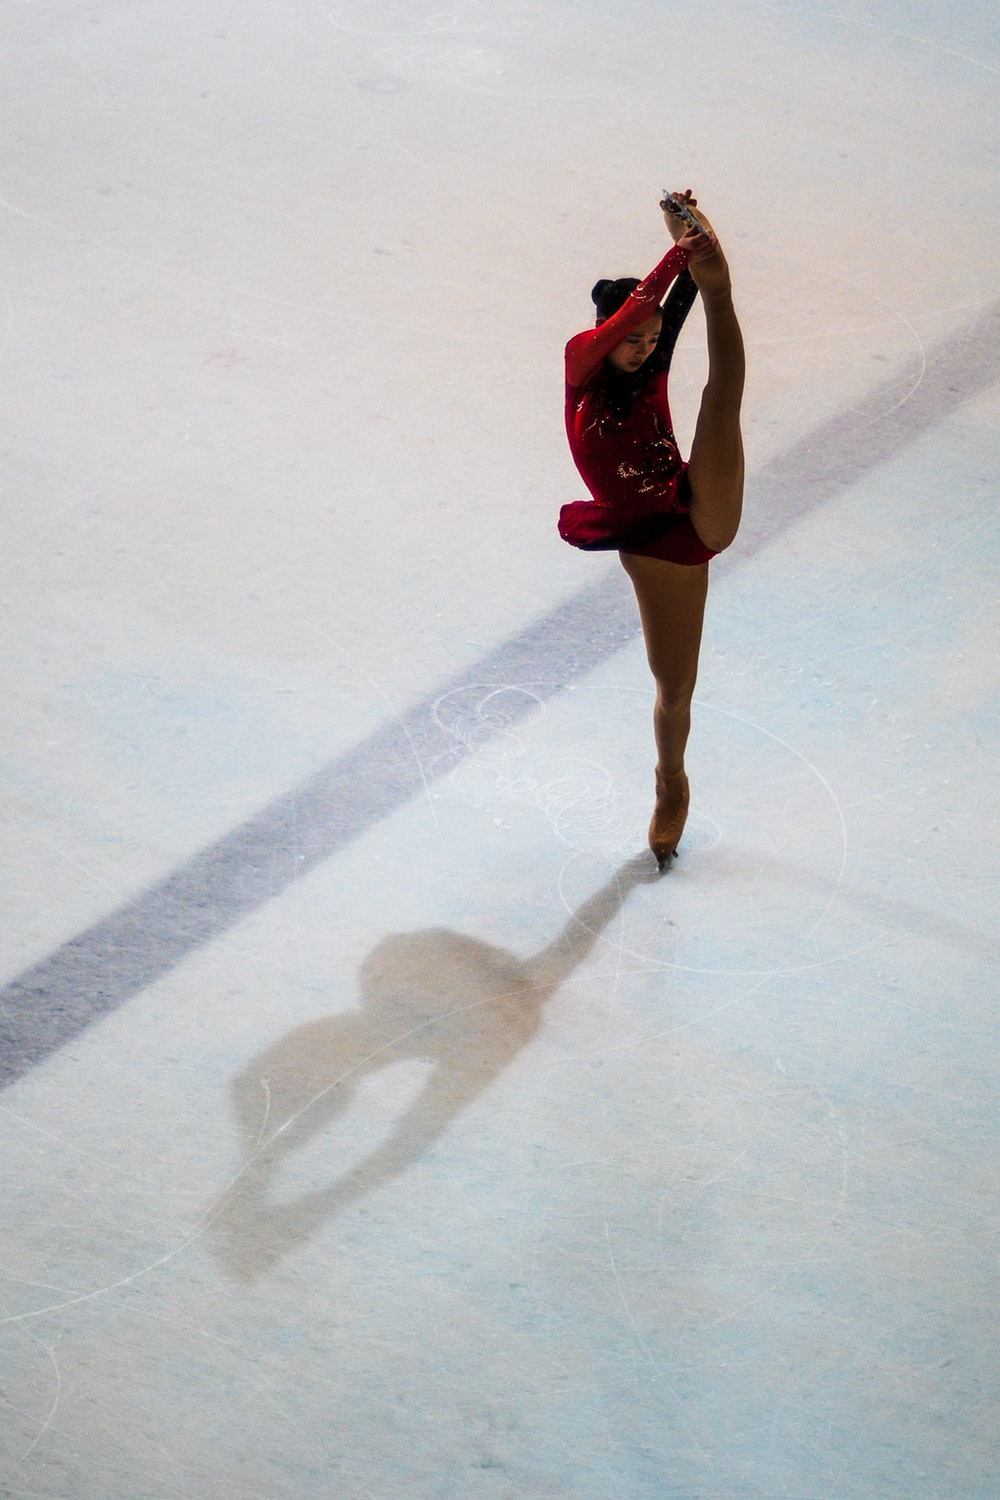 woman performing on ice skating rink